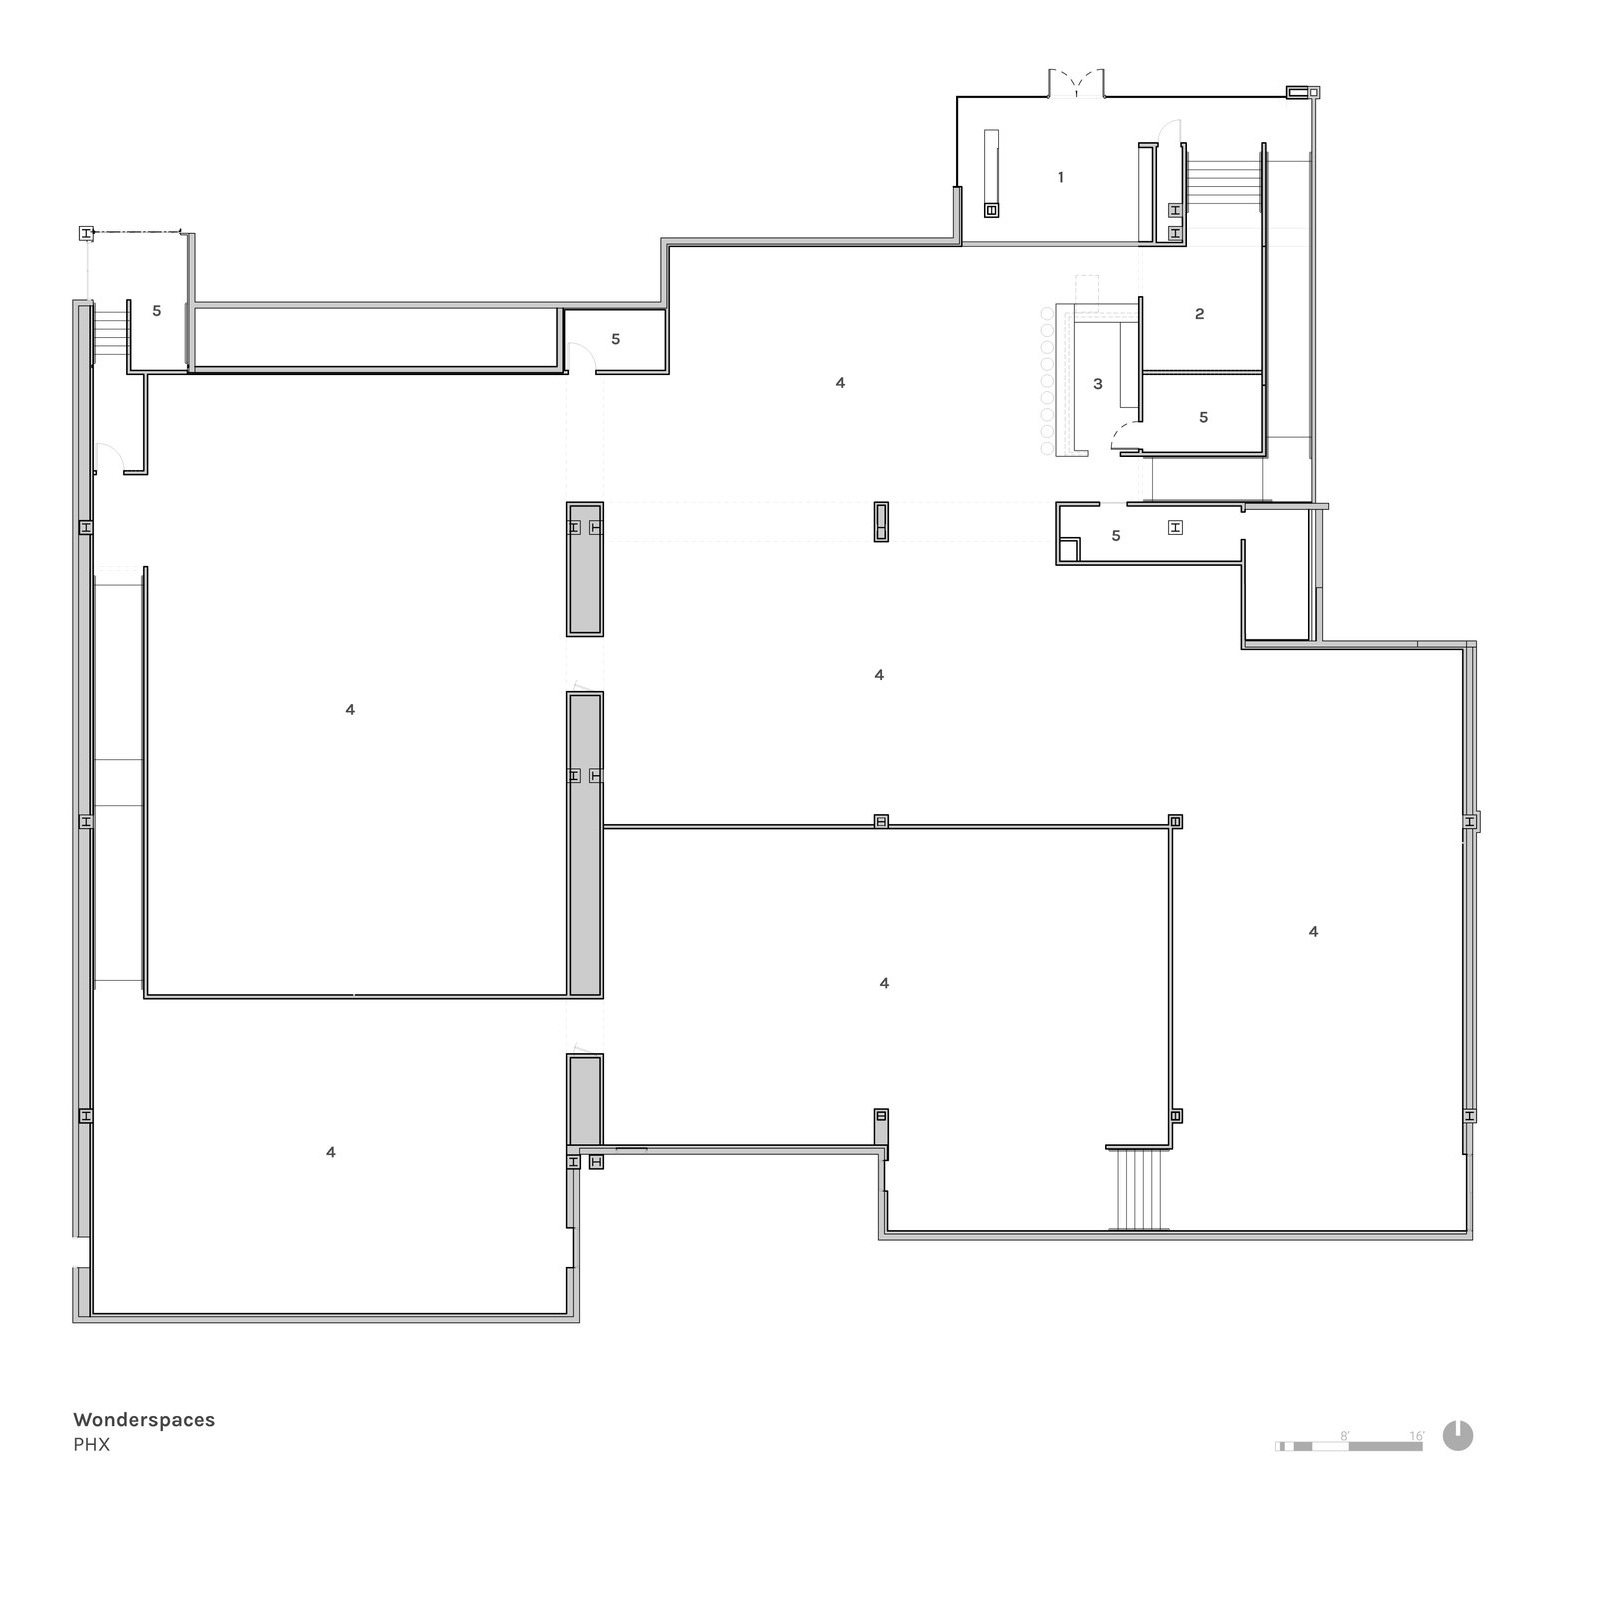 Floor Plan  1: Lobby, 2: Intro Gallery, 3: Bar, 4: Gallery, 5: Back of House